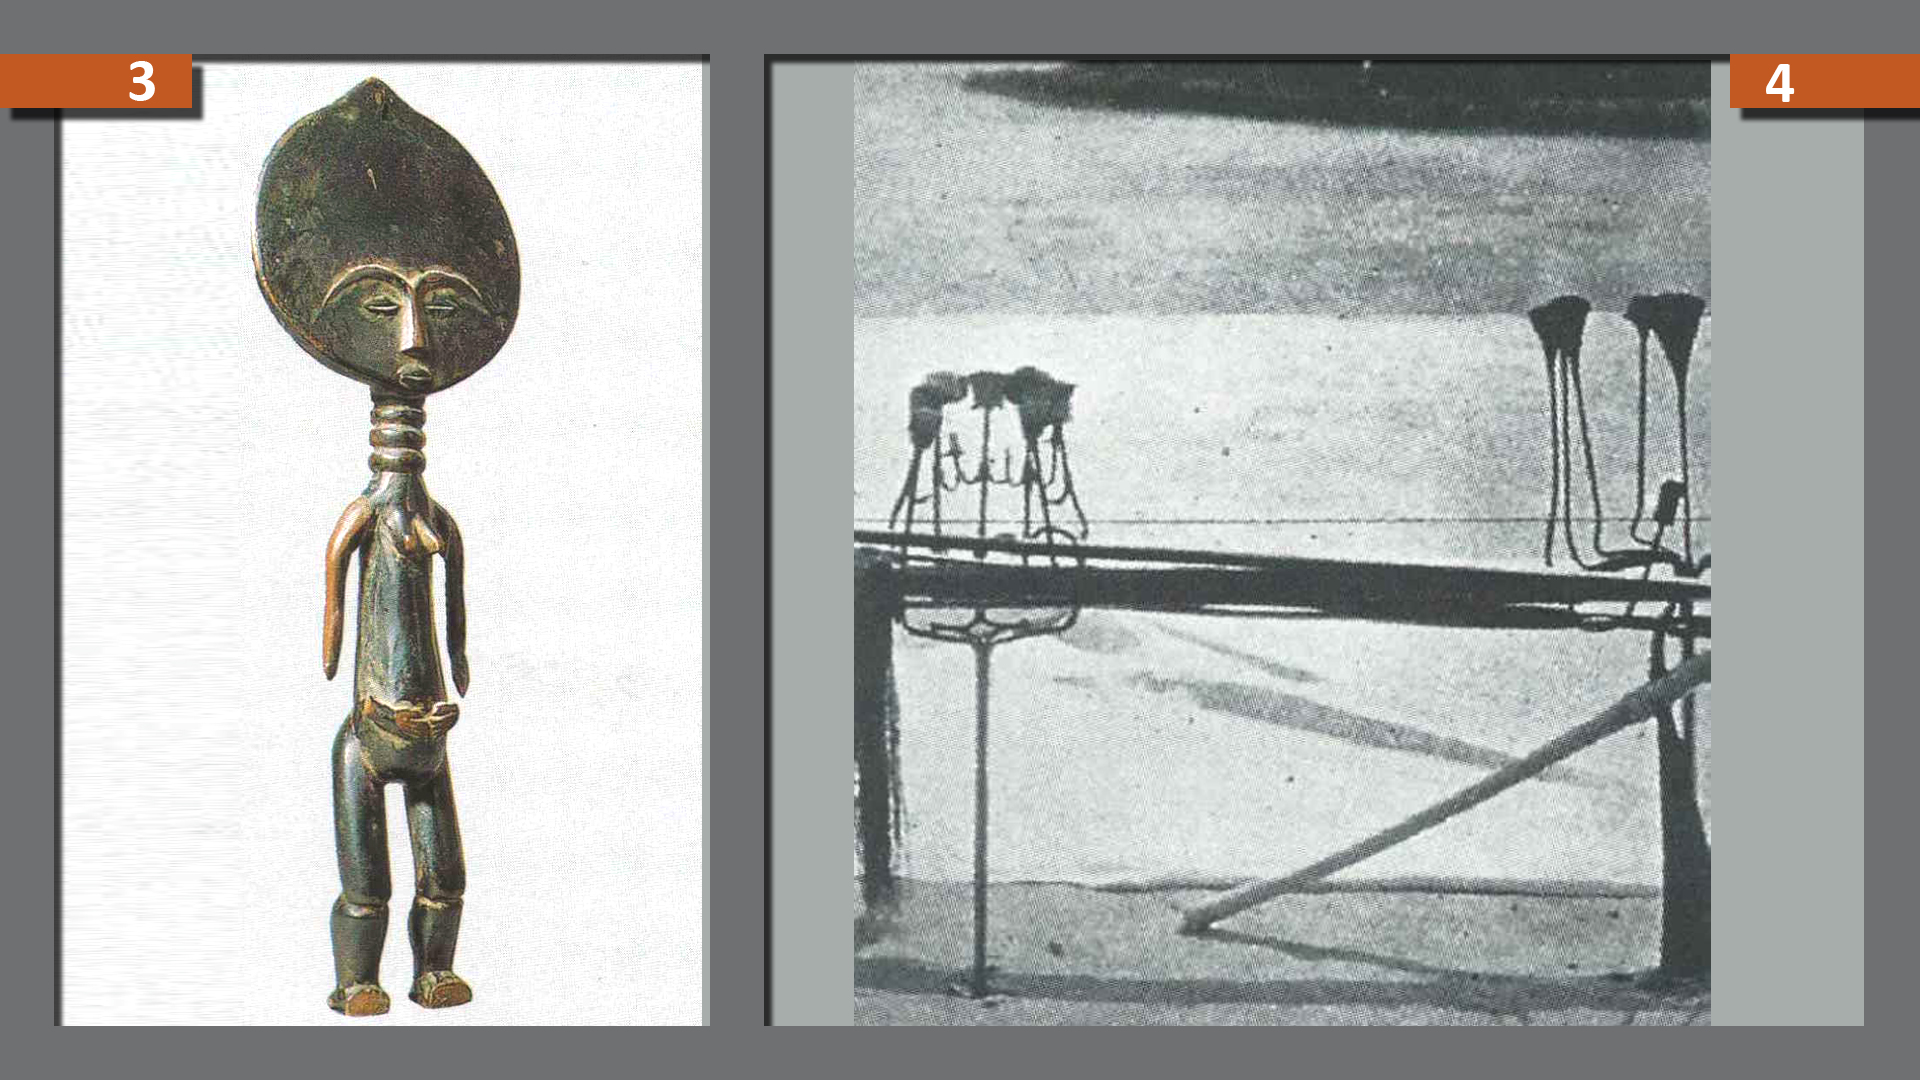 Bow-stands-from-Bemba-culture,-neighbors-of-the-Luba-peoples.-(C)-Audrey-I.-Richards-(before-1930)-in-Roberts-&-Roberts-1996,-82.